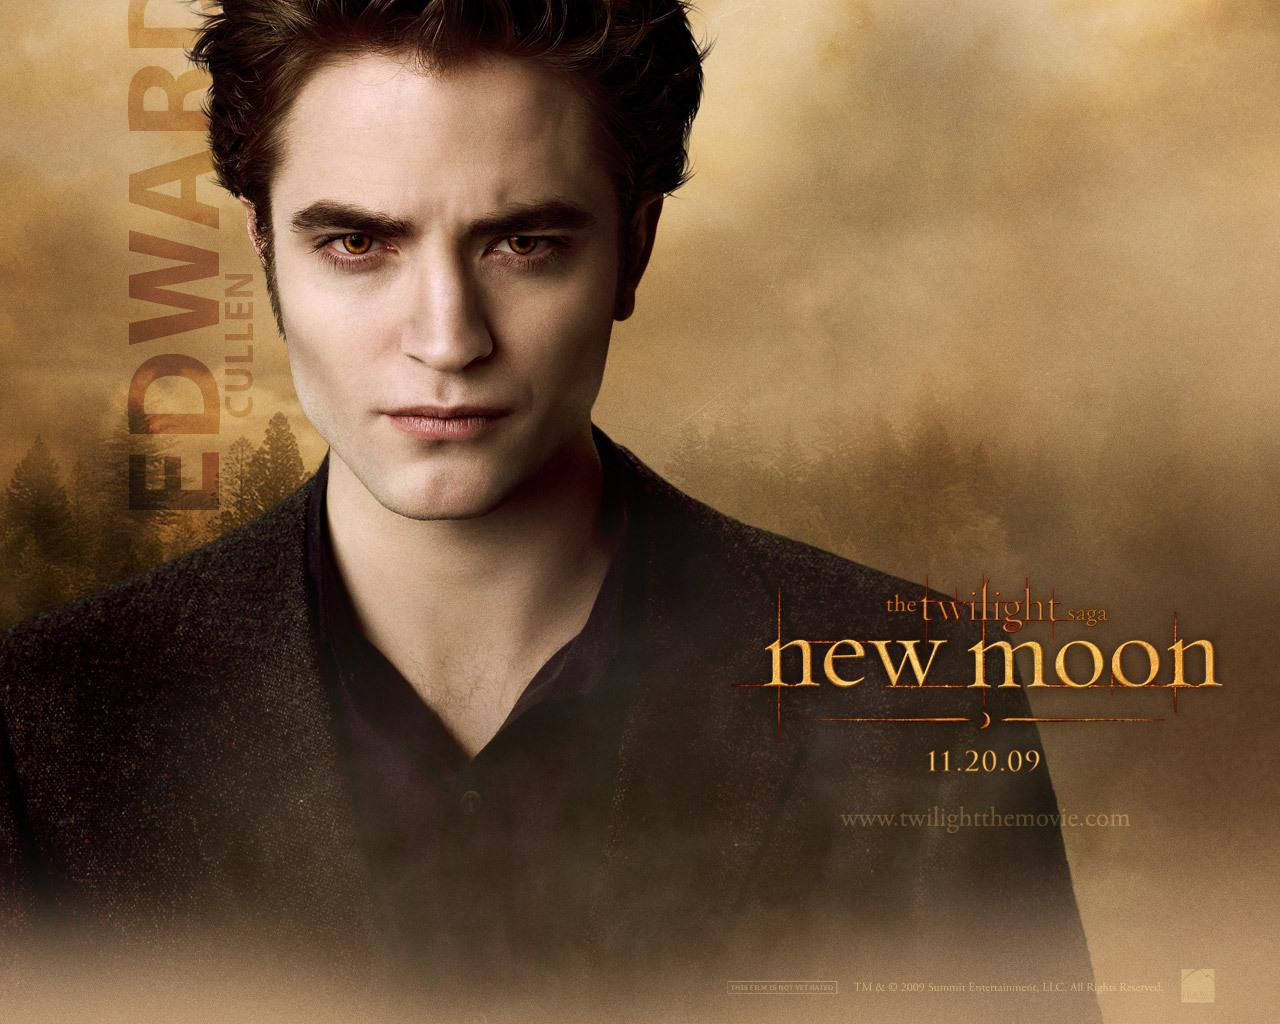 Twilight 2 - Newmoon